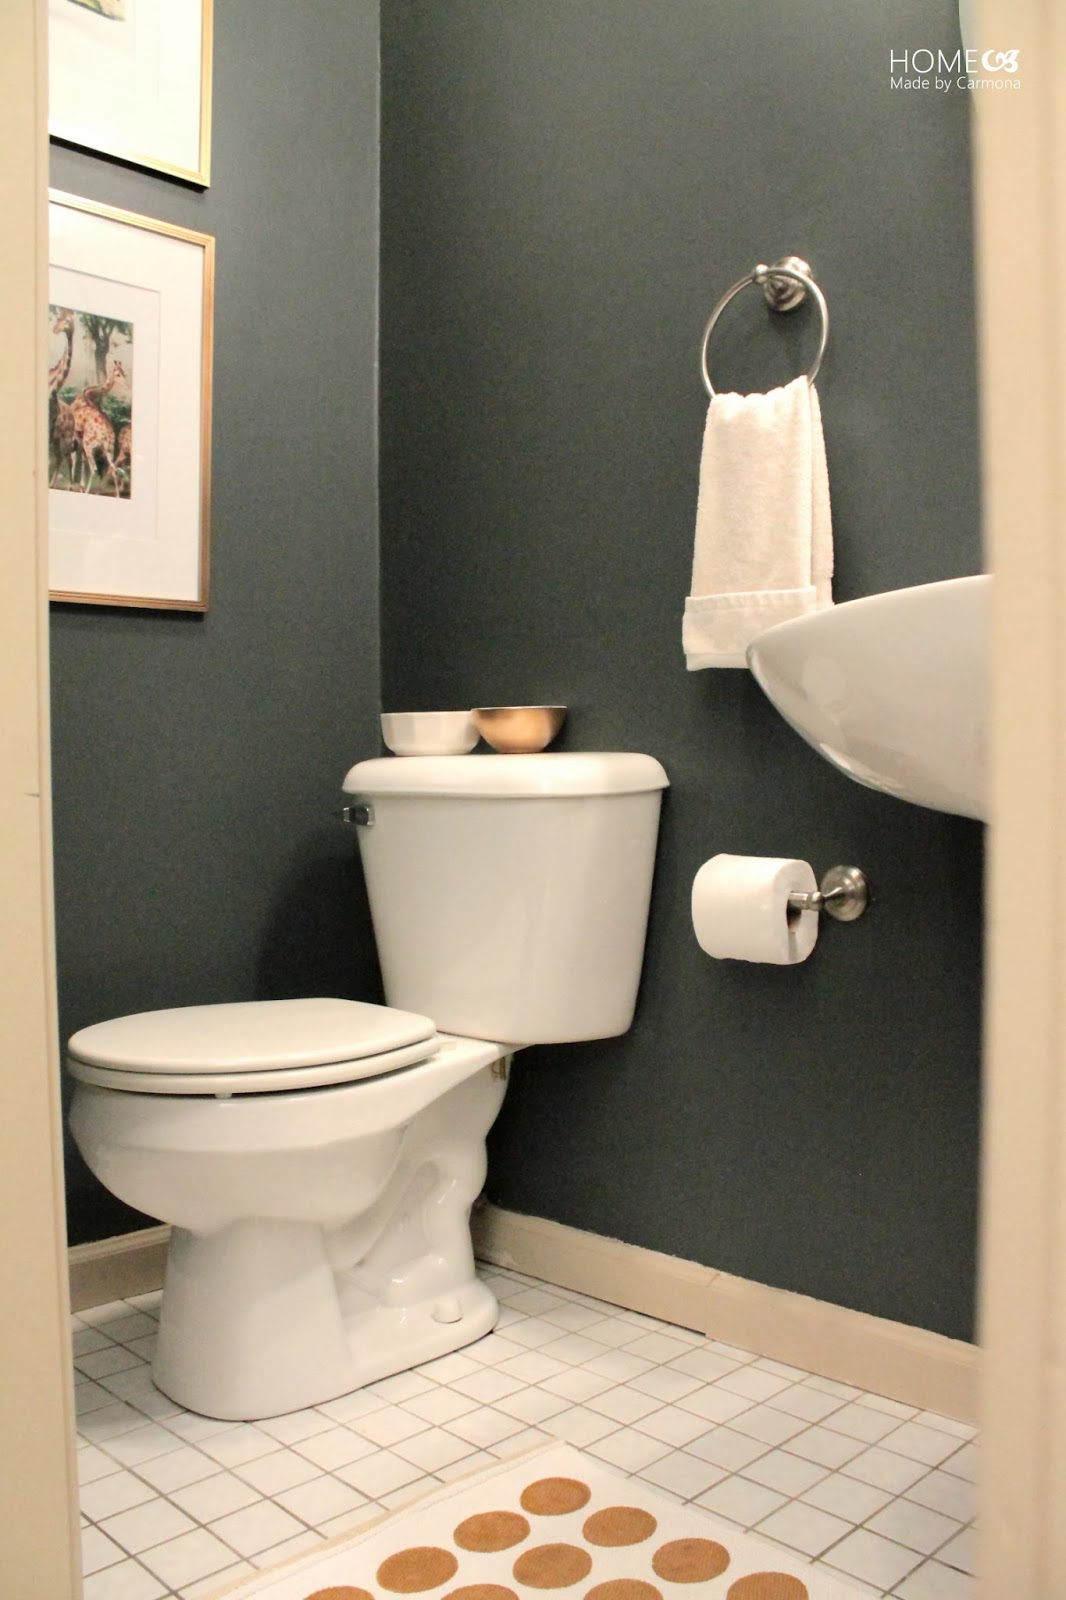 The two day powder room home made by carmona - What is a powder room ...